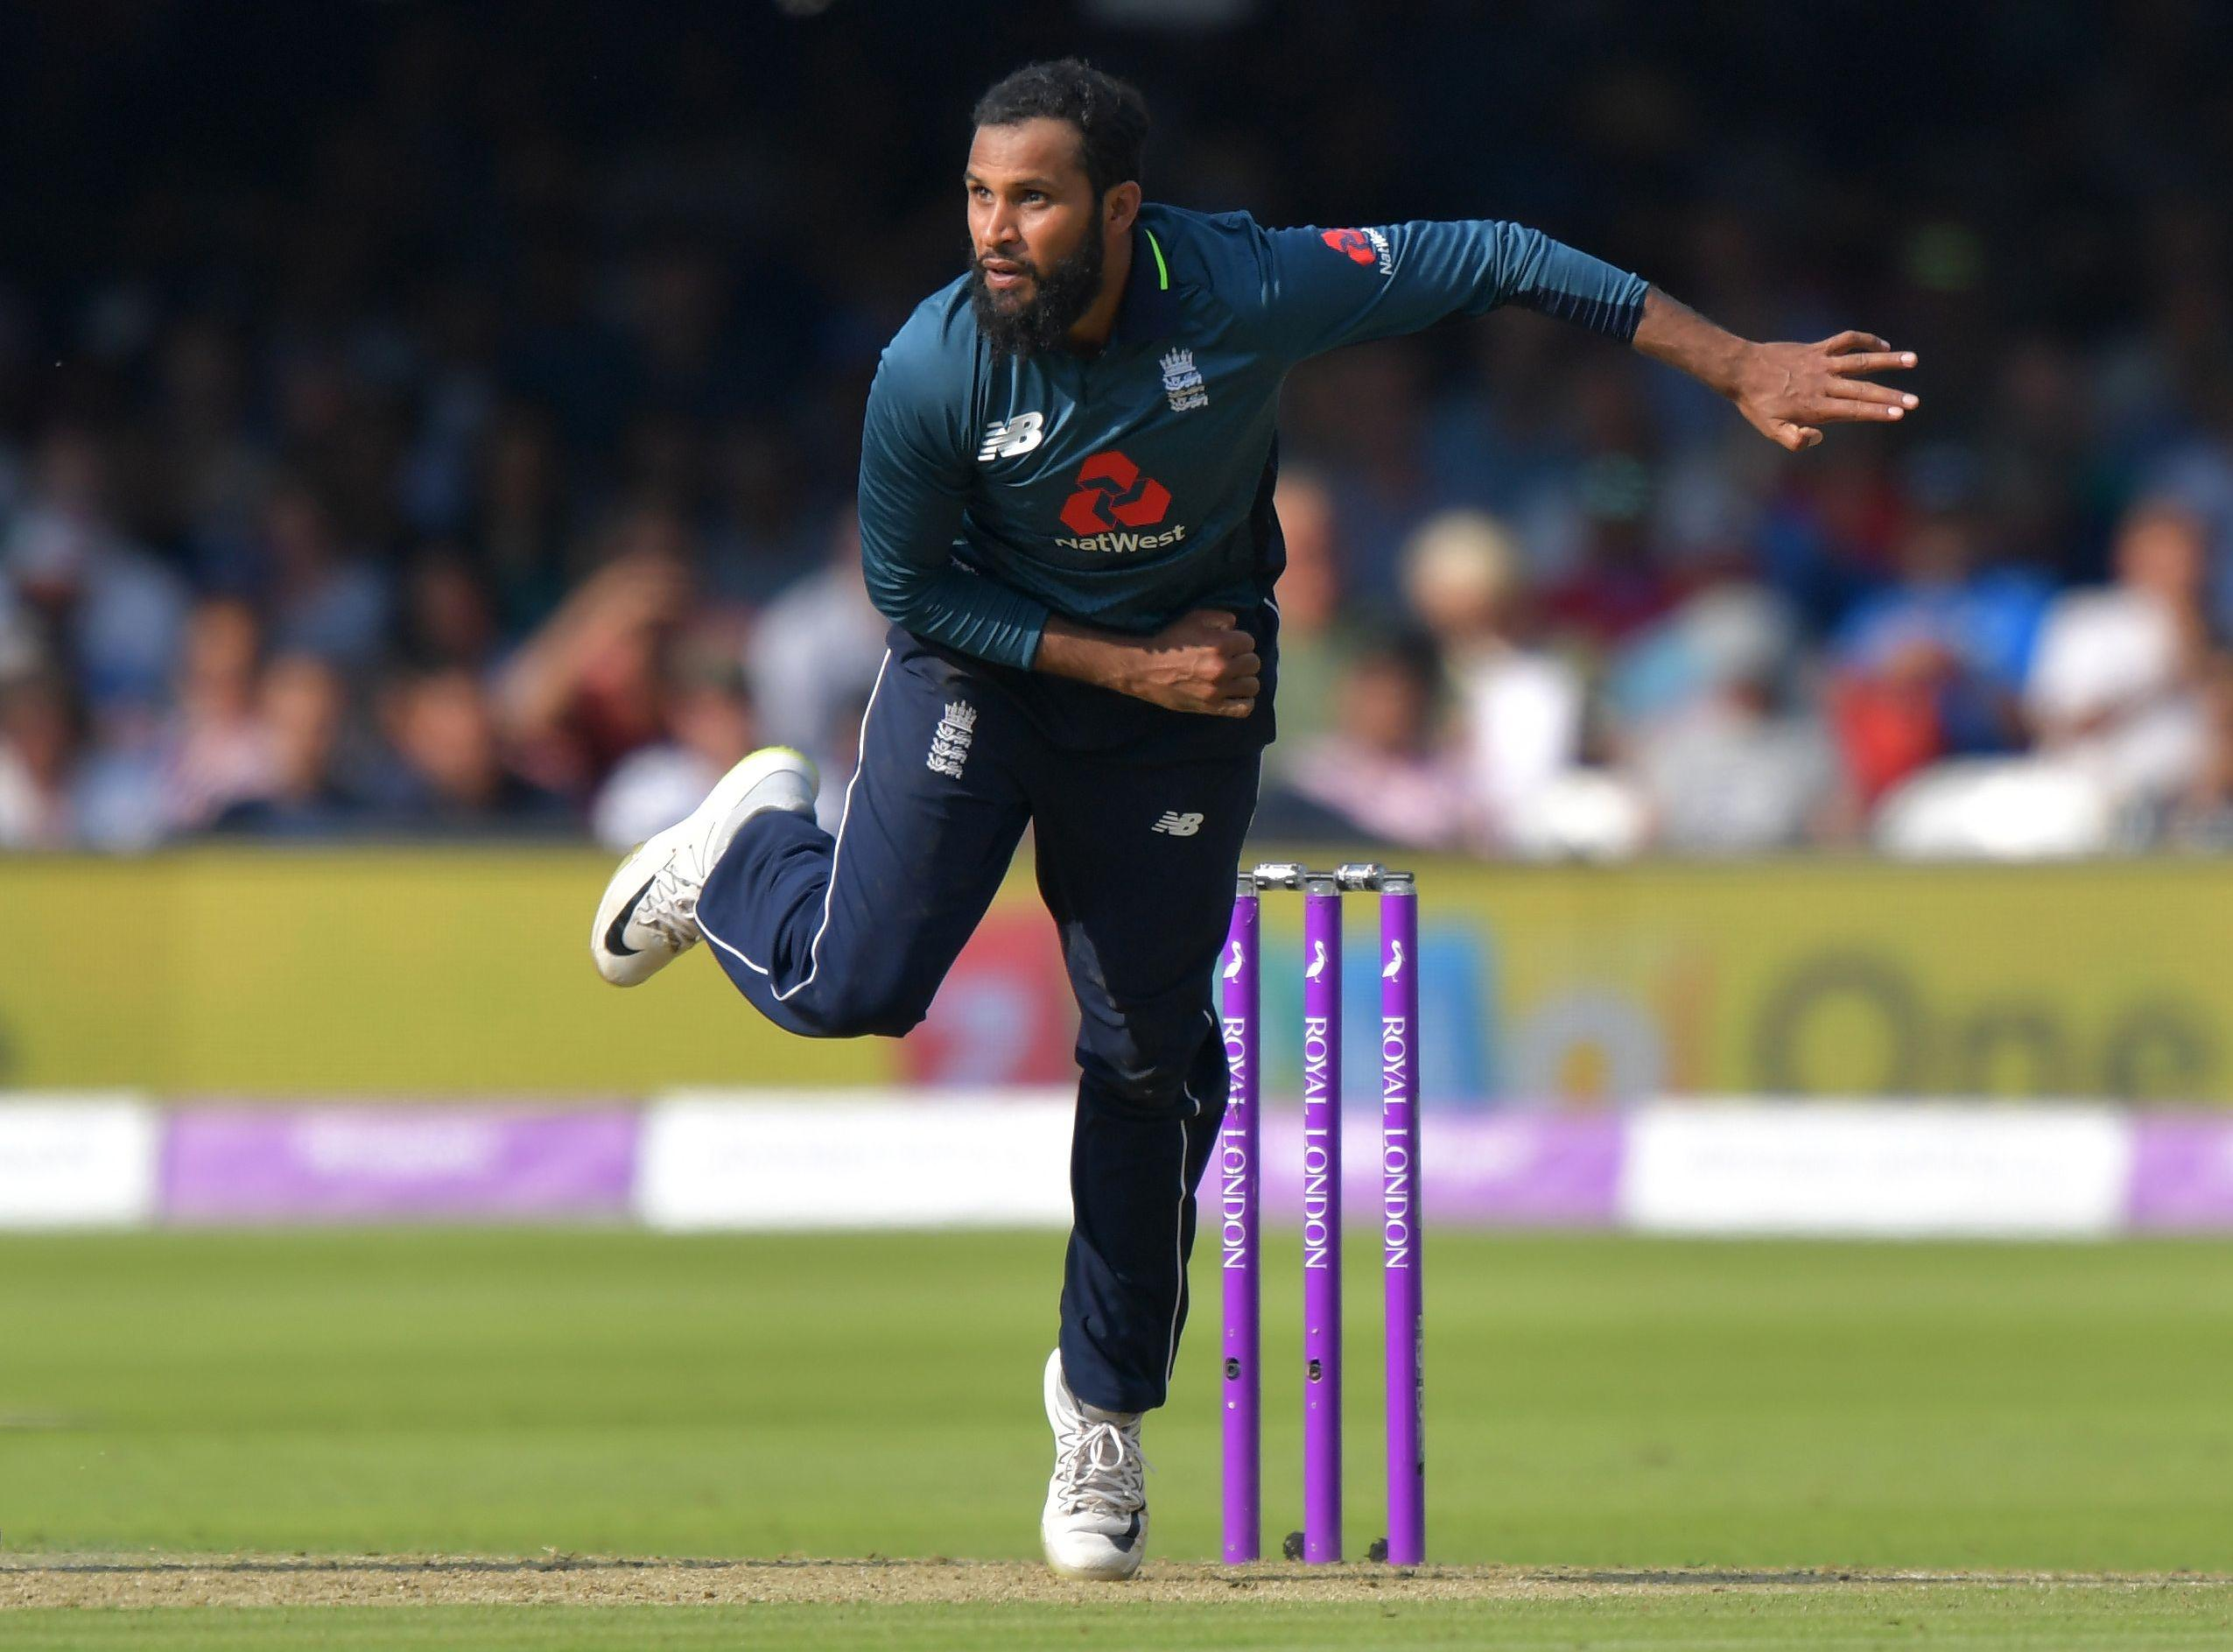 Adil Rashid has been involved in a war of words with former England skipper Michael Vaughan